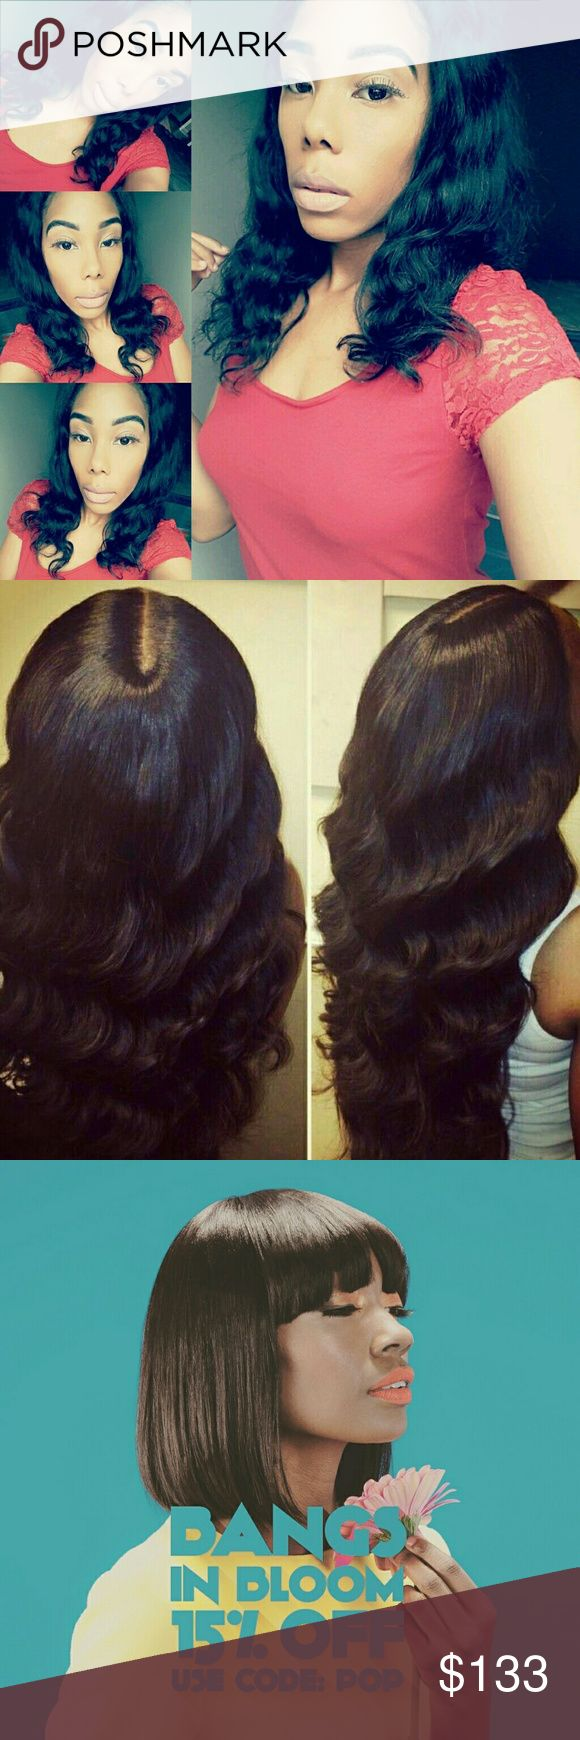 Online virgin hair Extension deals! Hey ladies and gents!!! Are you looking for high quality hair extensions! Want amazing full bundles with no shedding and no tangling and true to its length and texture!!? Shop beautify me virgin hair boutique! We have amazing deals starting at $133.00 for 3 loose wave bundles! We have plenty of of styles to choose from as our top selling blonde collection! We offer 30 day warranty  on your hair as well free standard SHIPPING!! Shop us today…